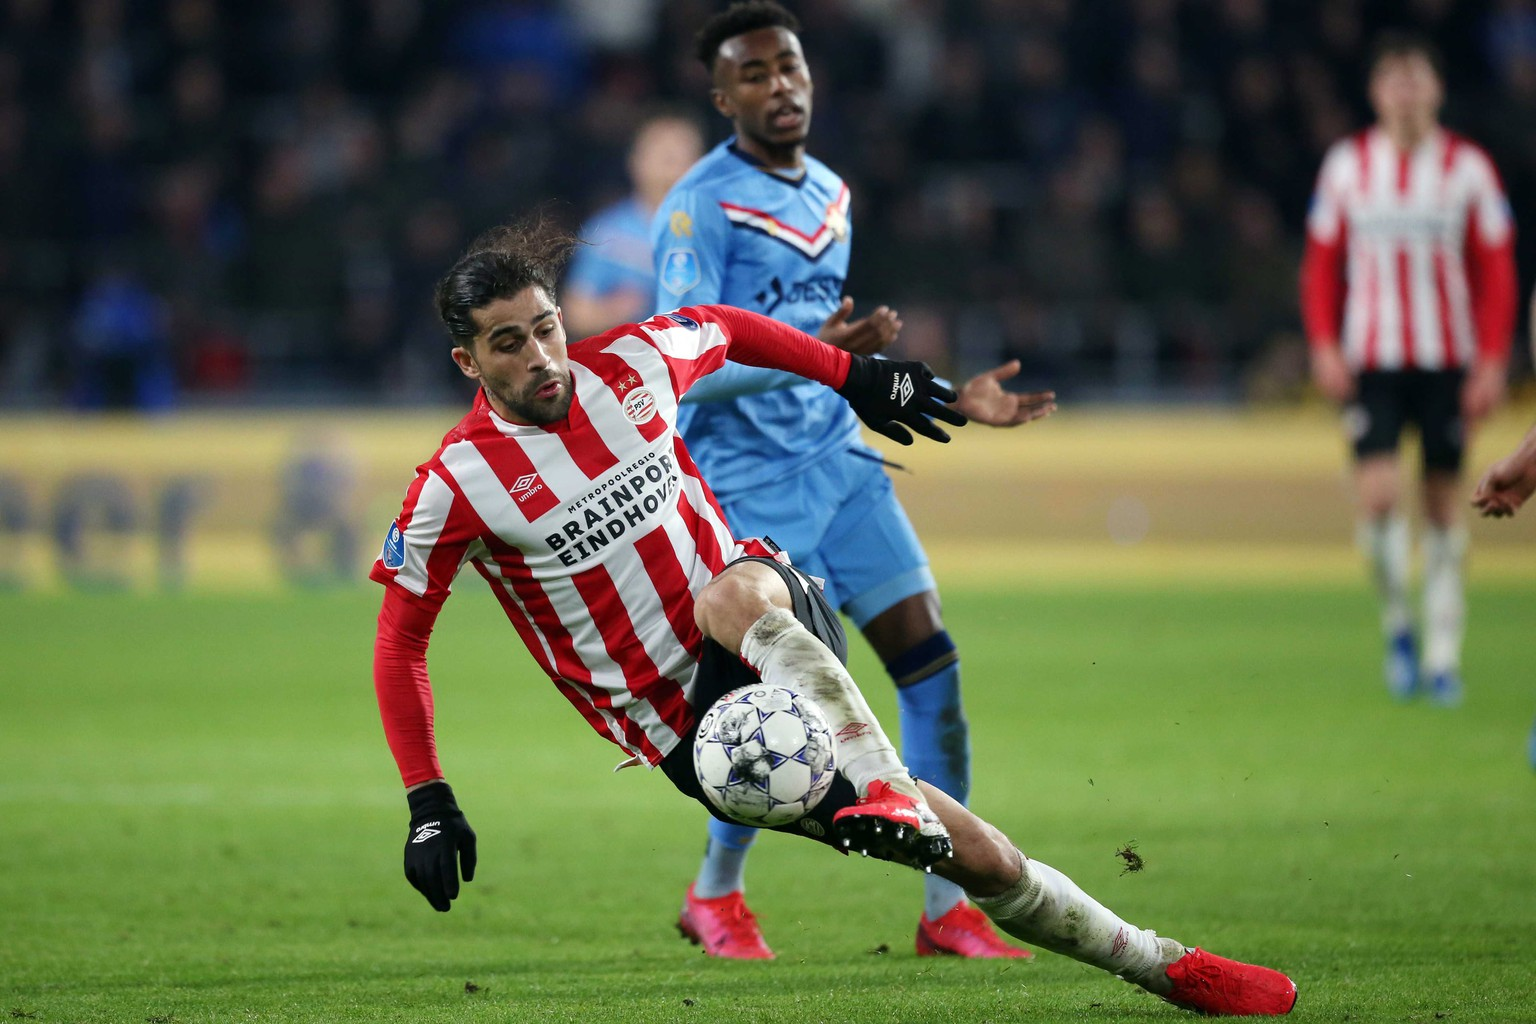 epa08203910 PSV's Ricardo Rodriguez (L) in action against Mike Tresor Ndayishimiye of Willem II during the Dutch Eredivisie match PSV vs Willem II in Eindhoven, The Netherlands, 08 February 2020.  EPA/PIETER STAM DE JONGE